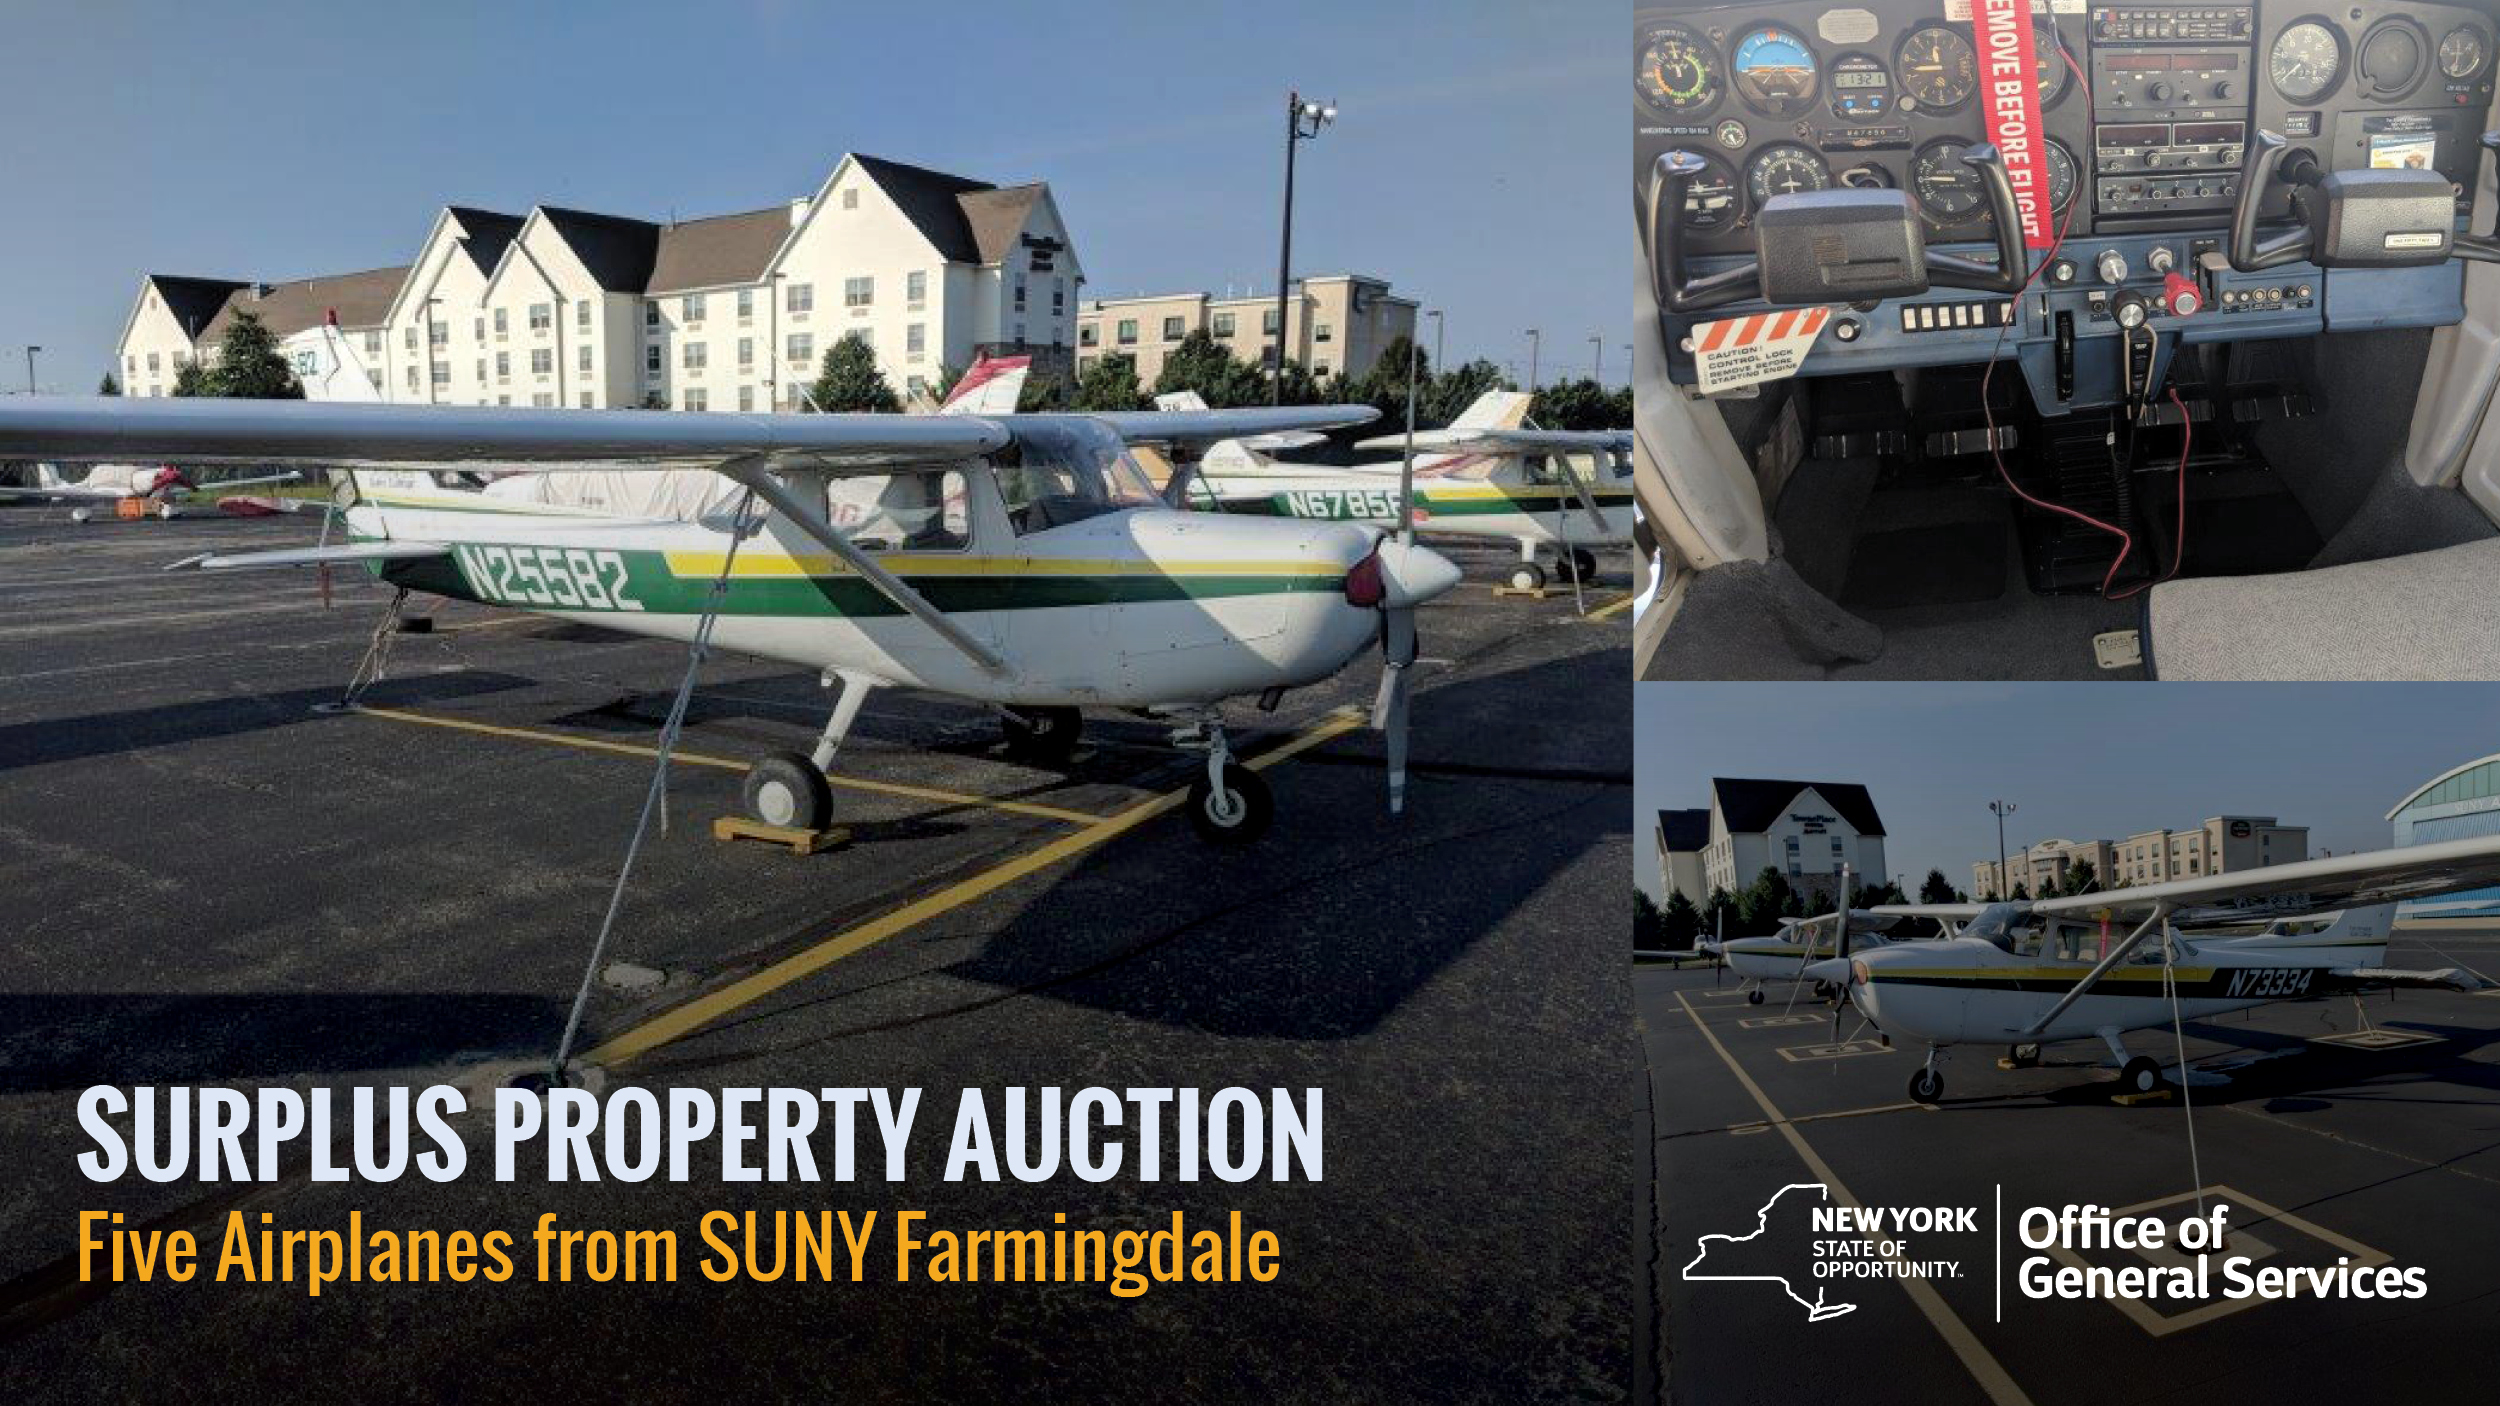 OGS to Auction Five Airplanes April 23 at Republic Airport on Long